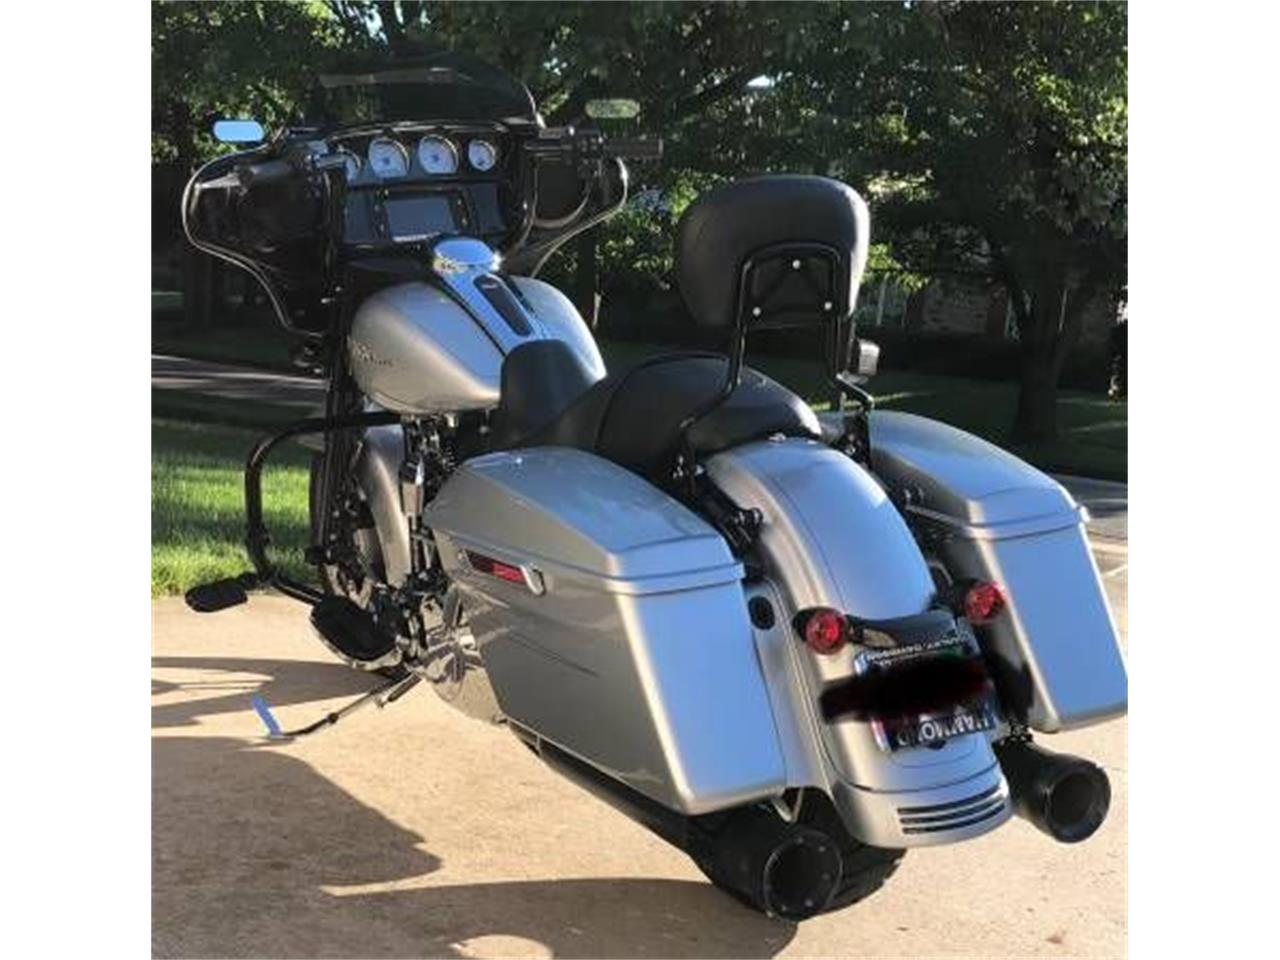 2015 Harley-Davidson Motorcycle (CC-1260371) for sale in Cadillac, Michigan